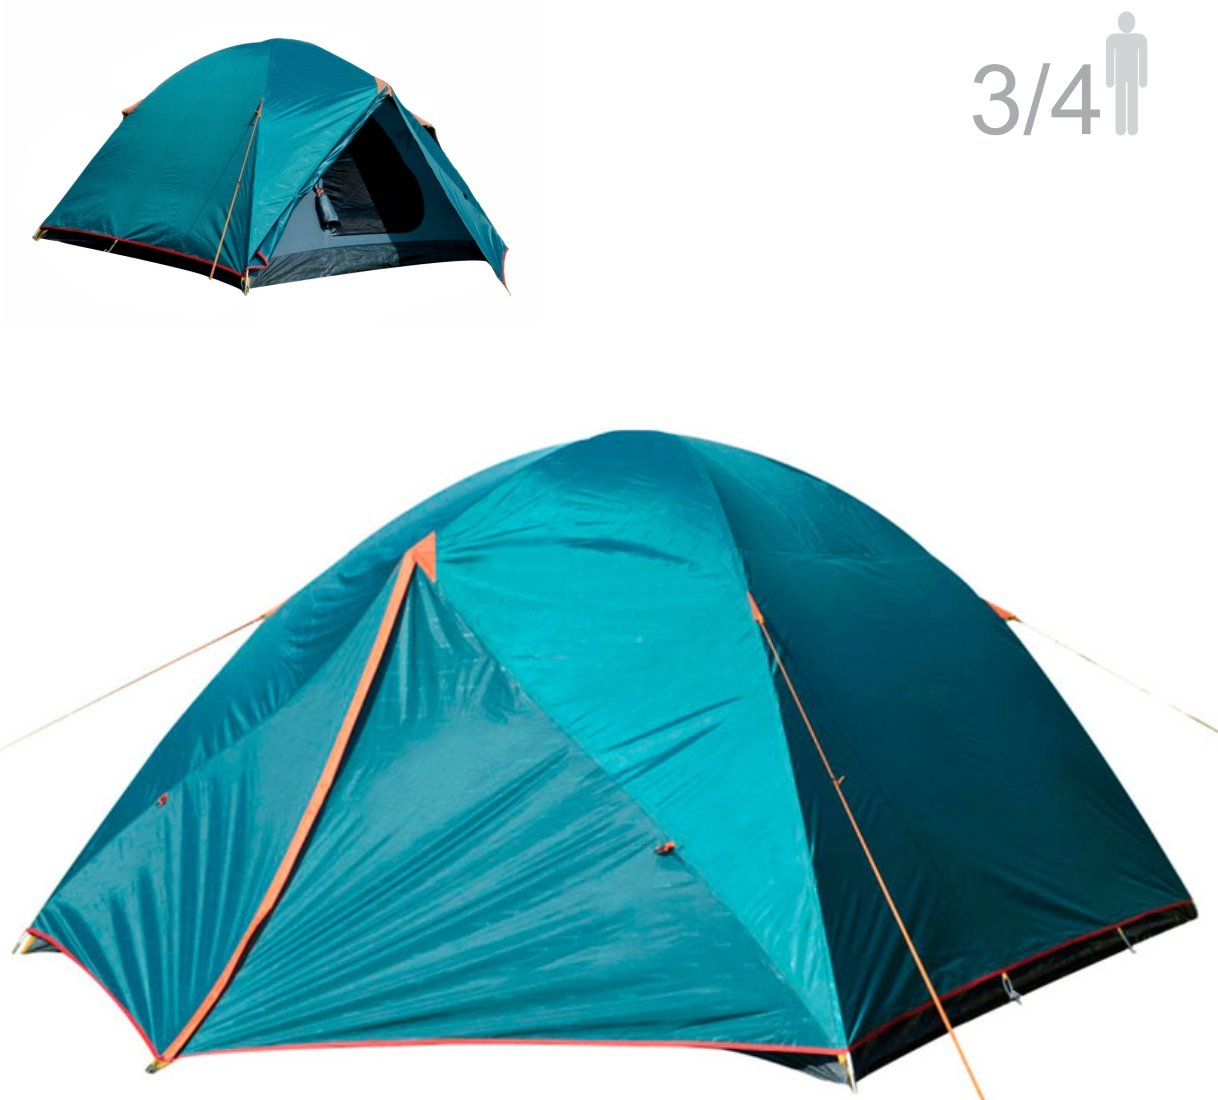 NTK Colorado GT 3 to 4 Person 7 by 7 Foot Foot Outdoor Dome Family Camping Tent 100% Waterproof 2500mm, Easy Assembly, Durable Fabric Full Coverage Rainfly - Micro Mosquito Mesh